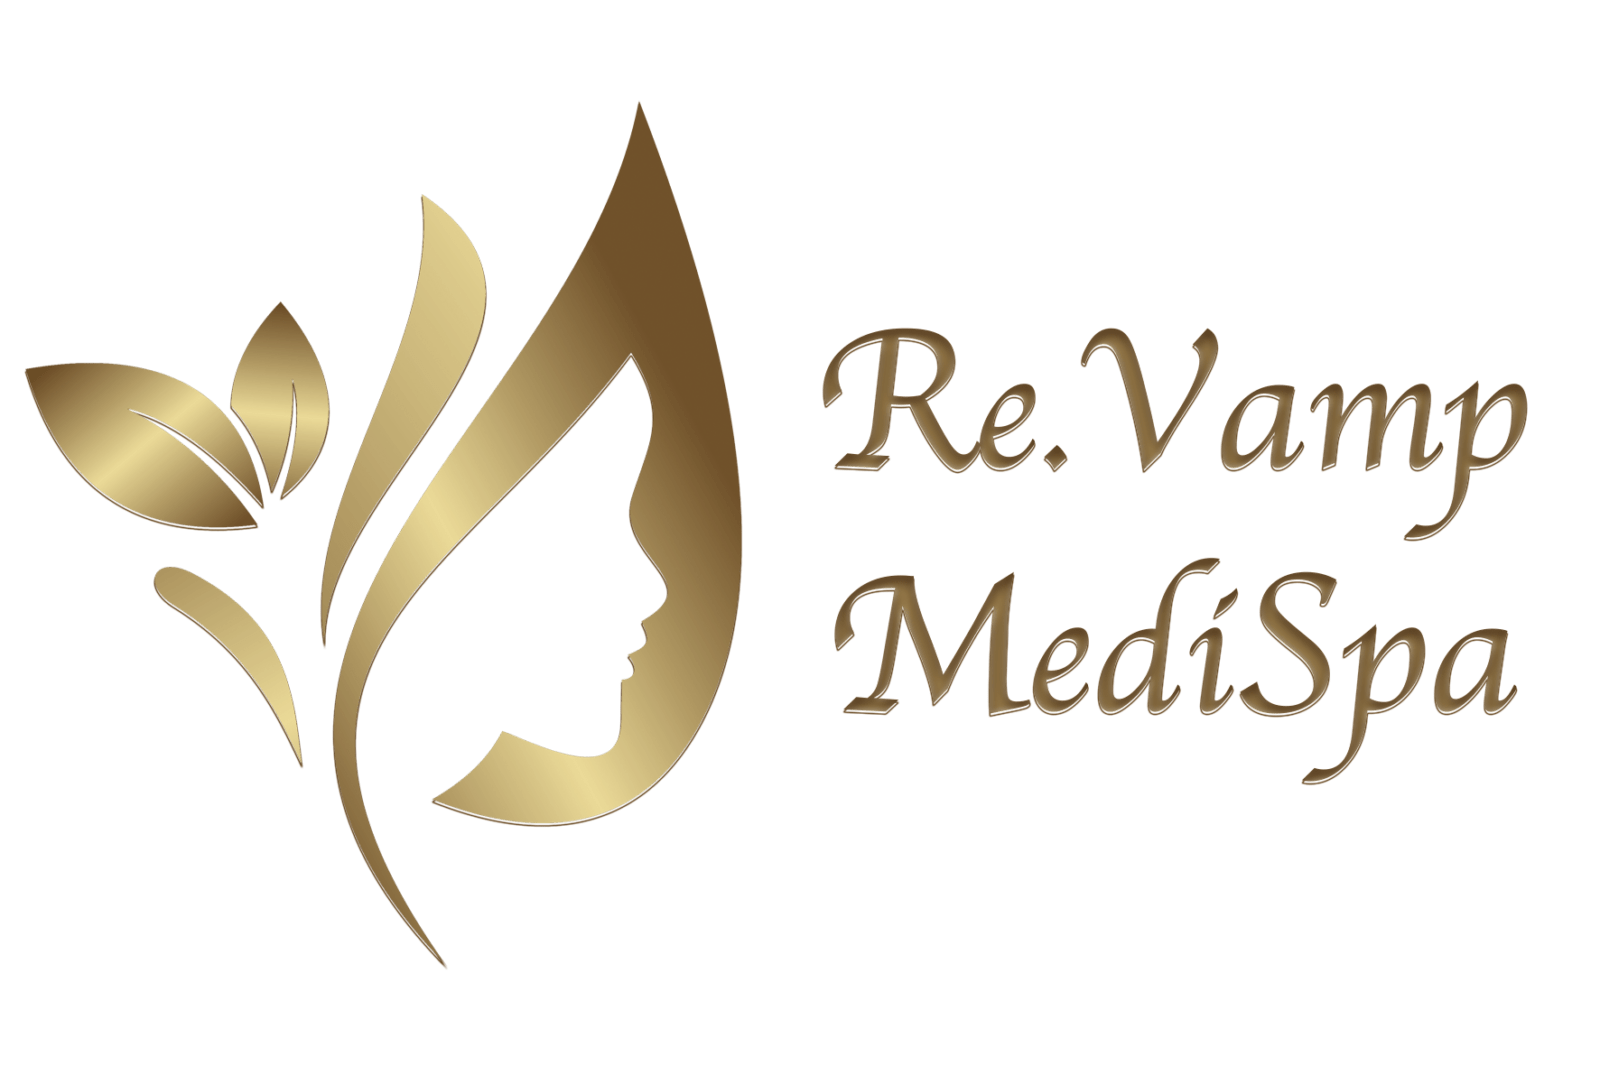 Re.vamp Medi Spa